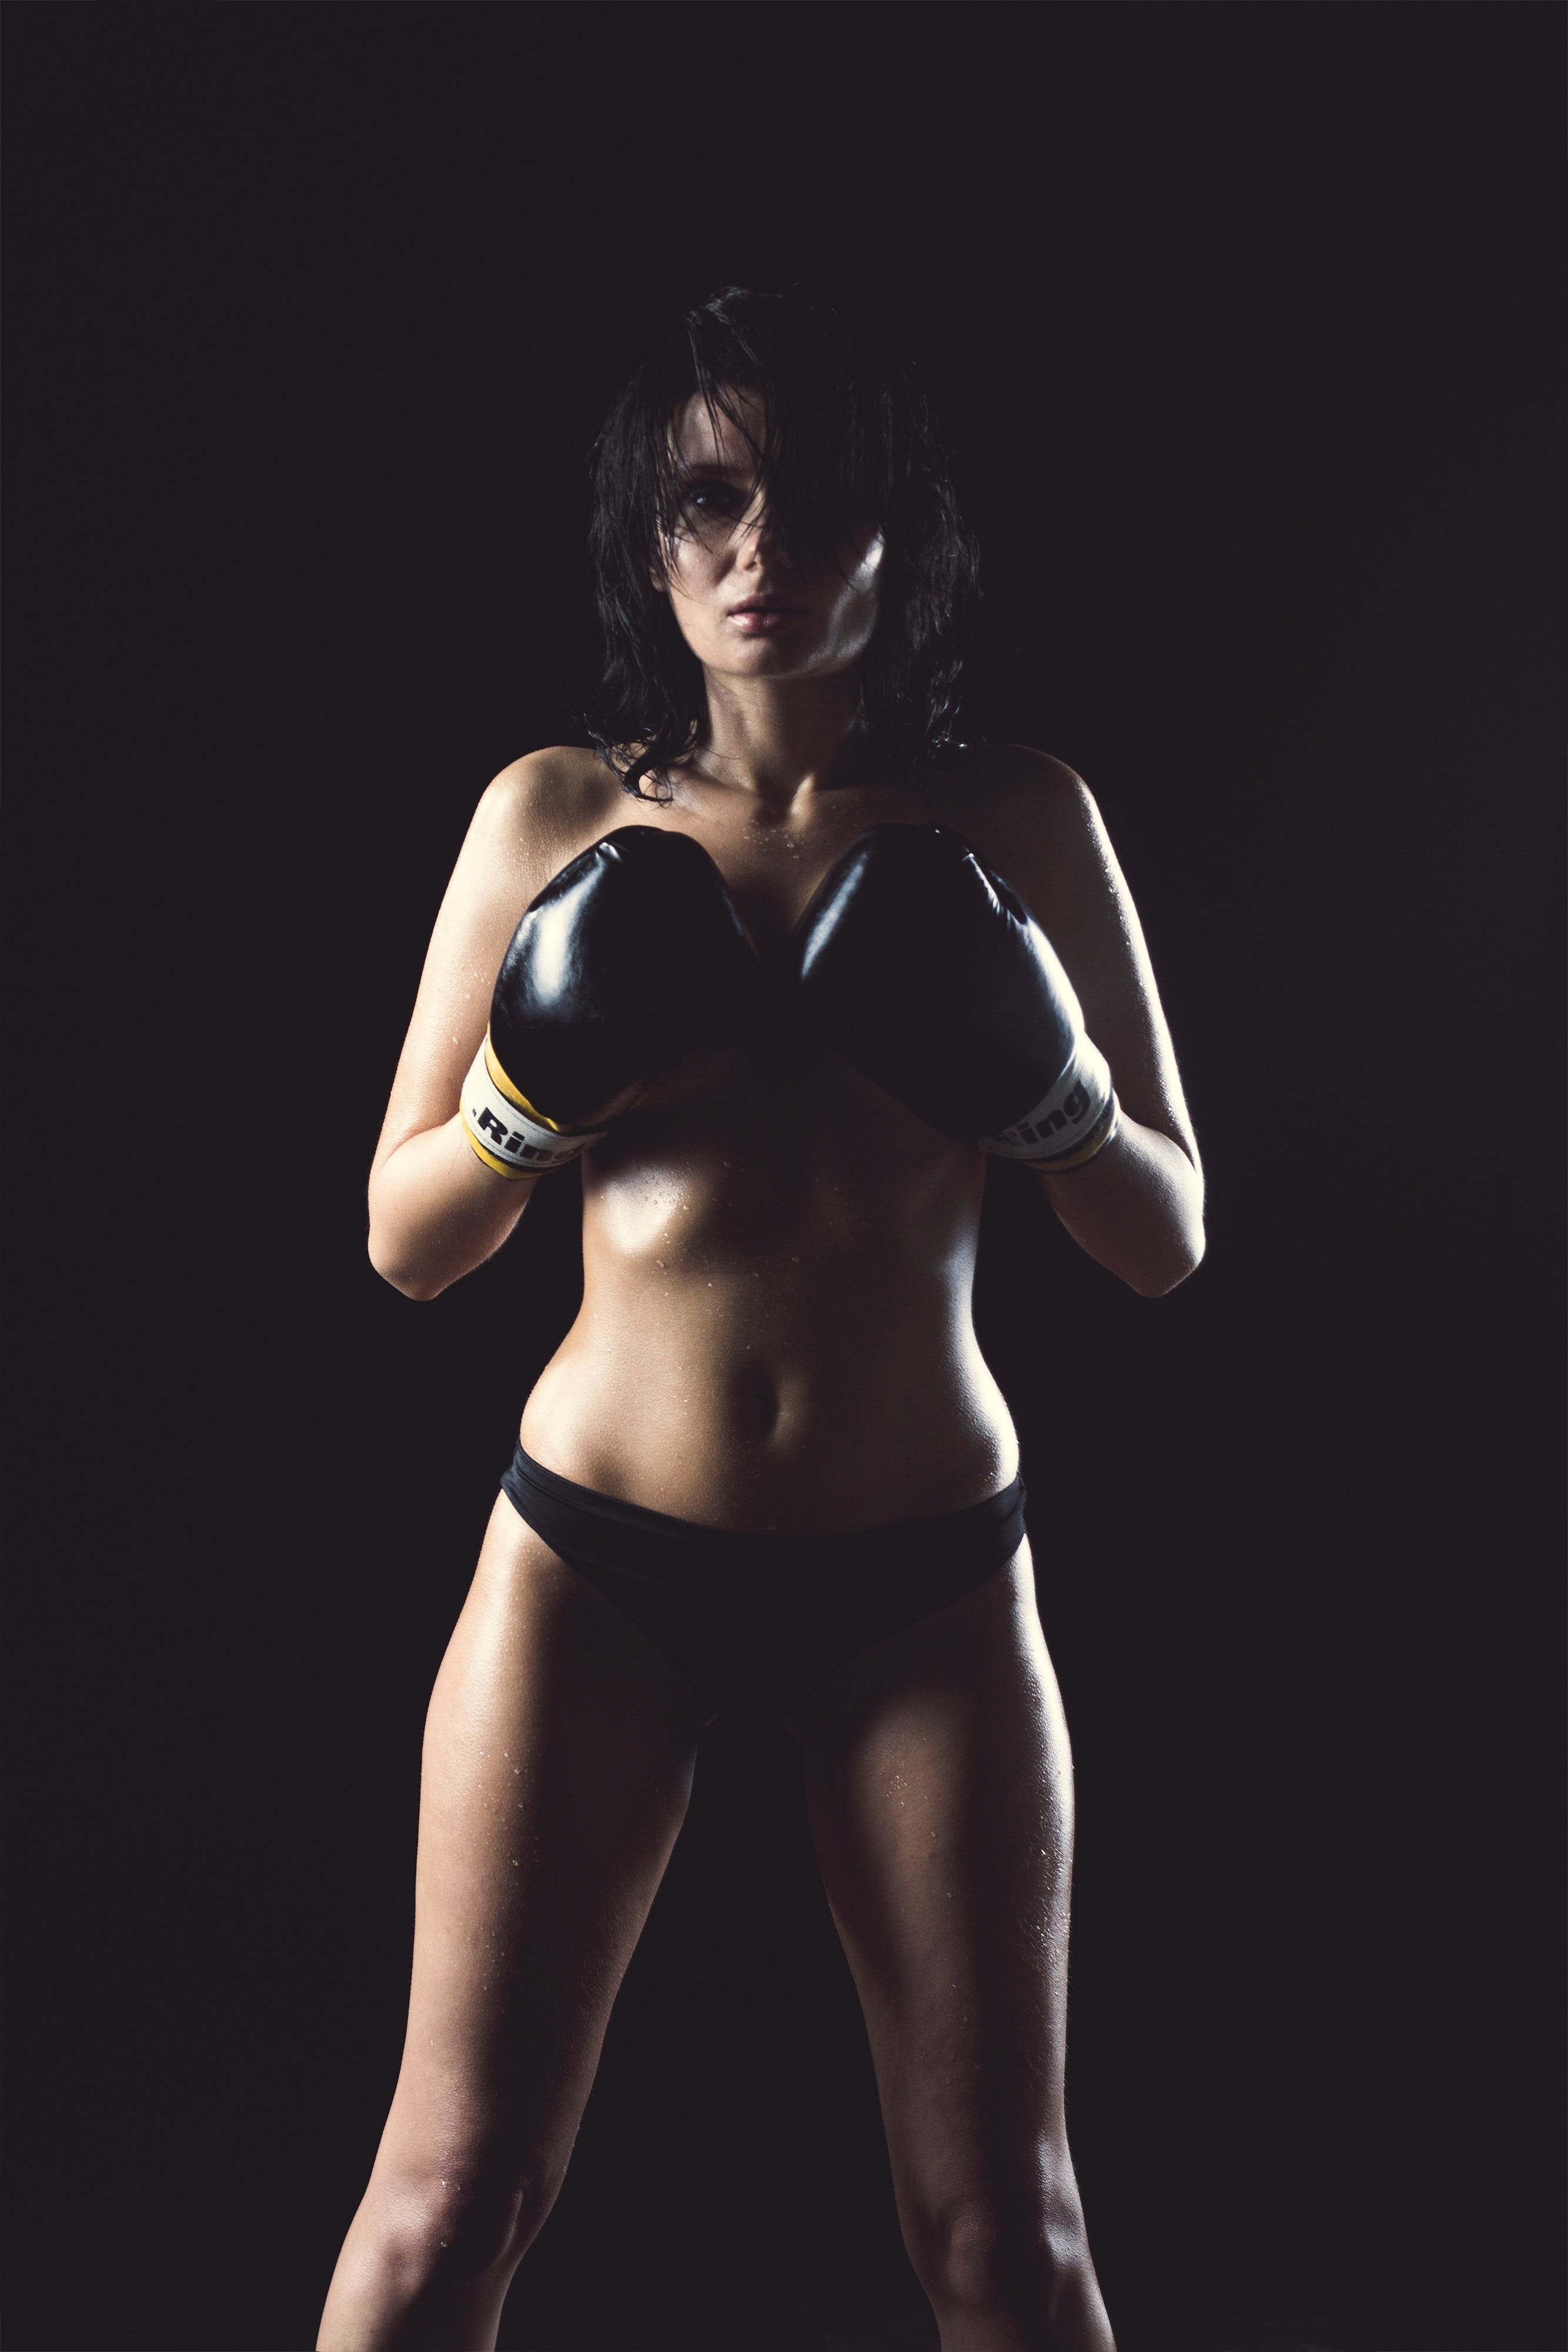 Woman in Black Panty Wearing Black Boxing Gloves Posing for Picture